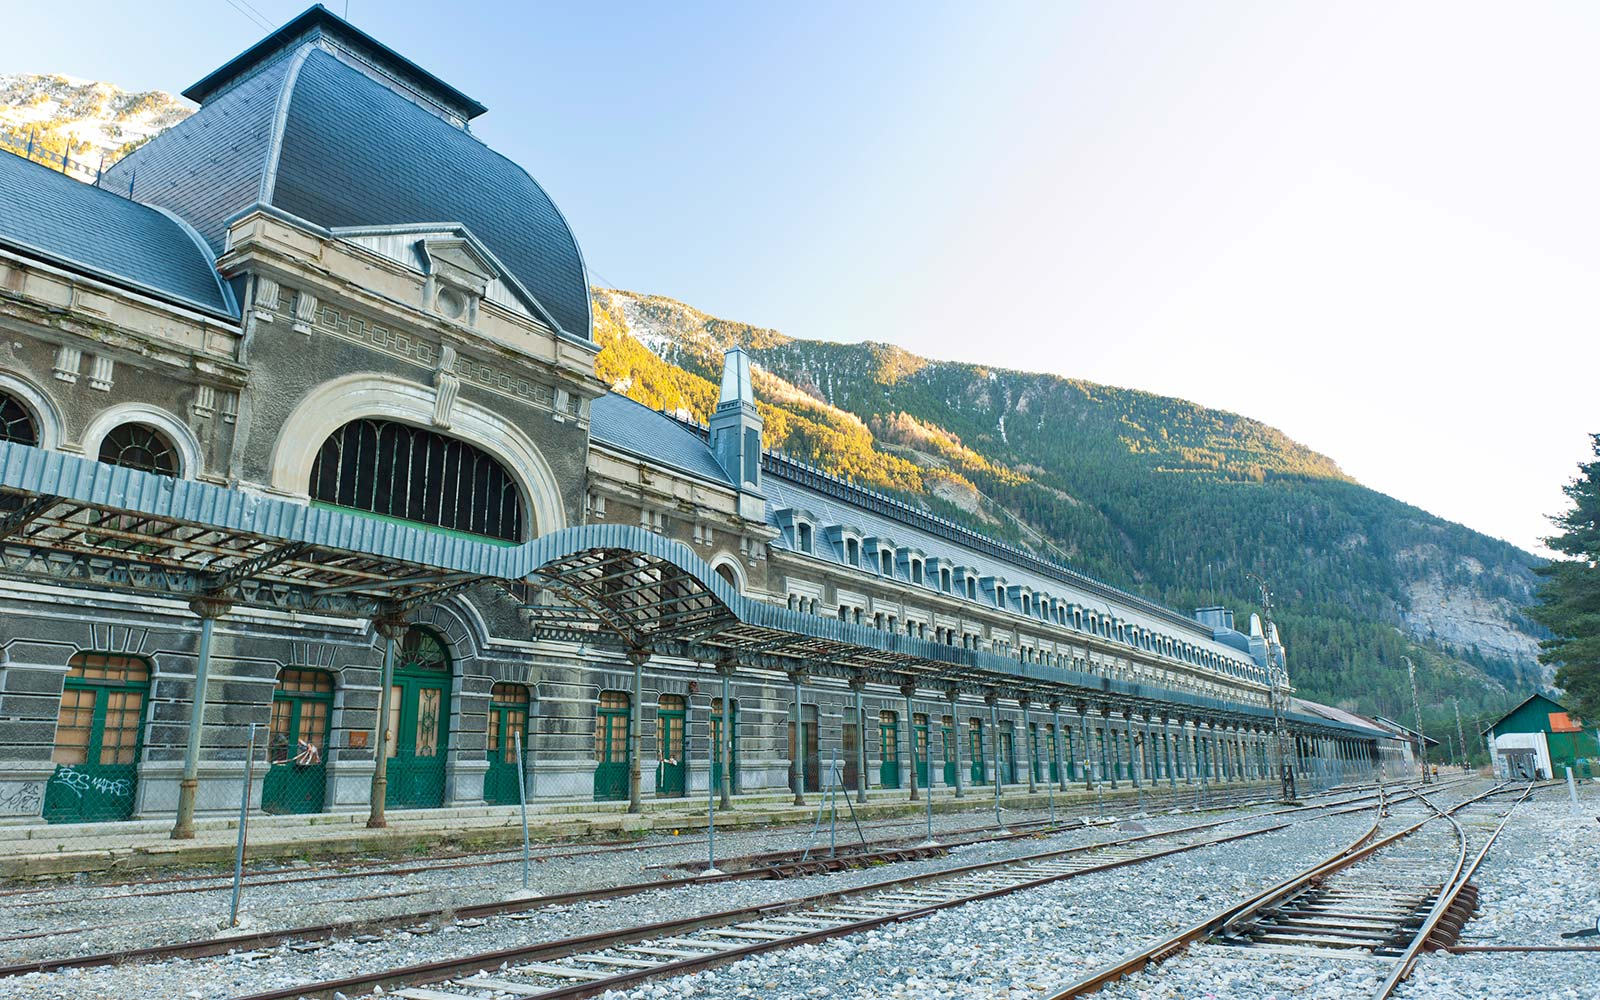 This Abandoned Rail Station in the Pyrenees Is Being Returned to Its Palace-like Glory